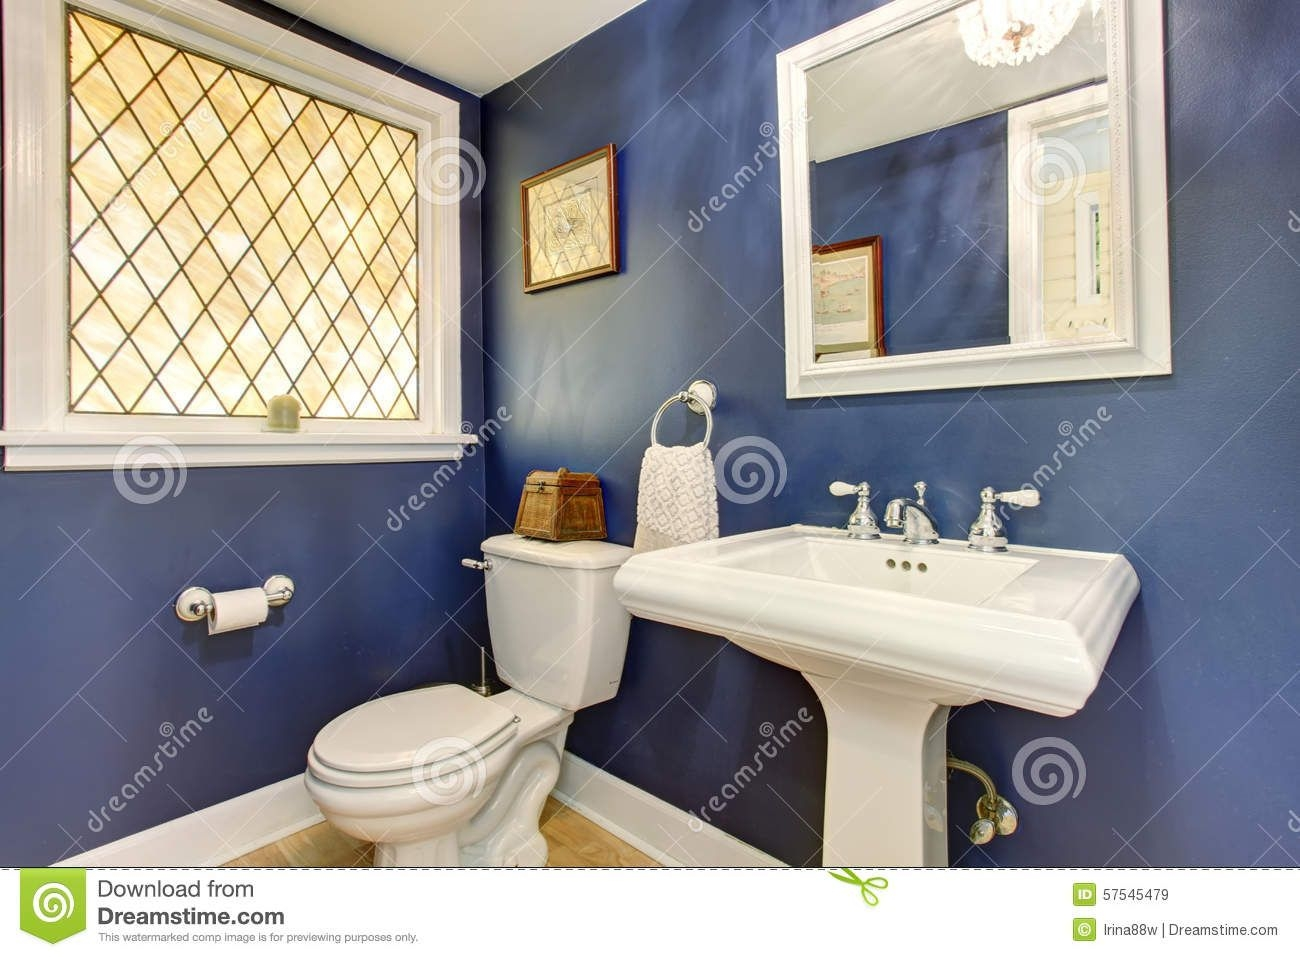 Brilliant Bathroom With Deep Blue Interior Walls Stock Image  Image Of Project Brown 57545479